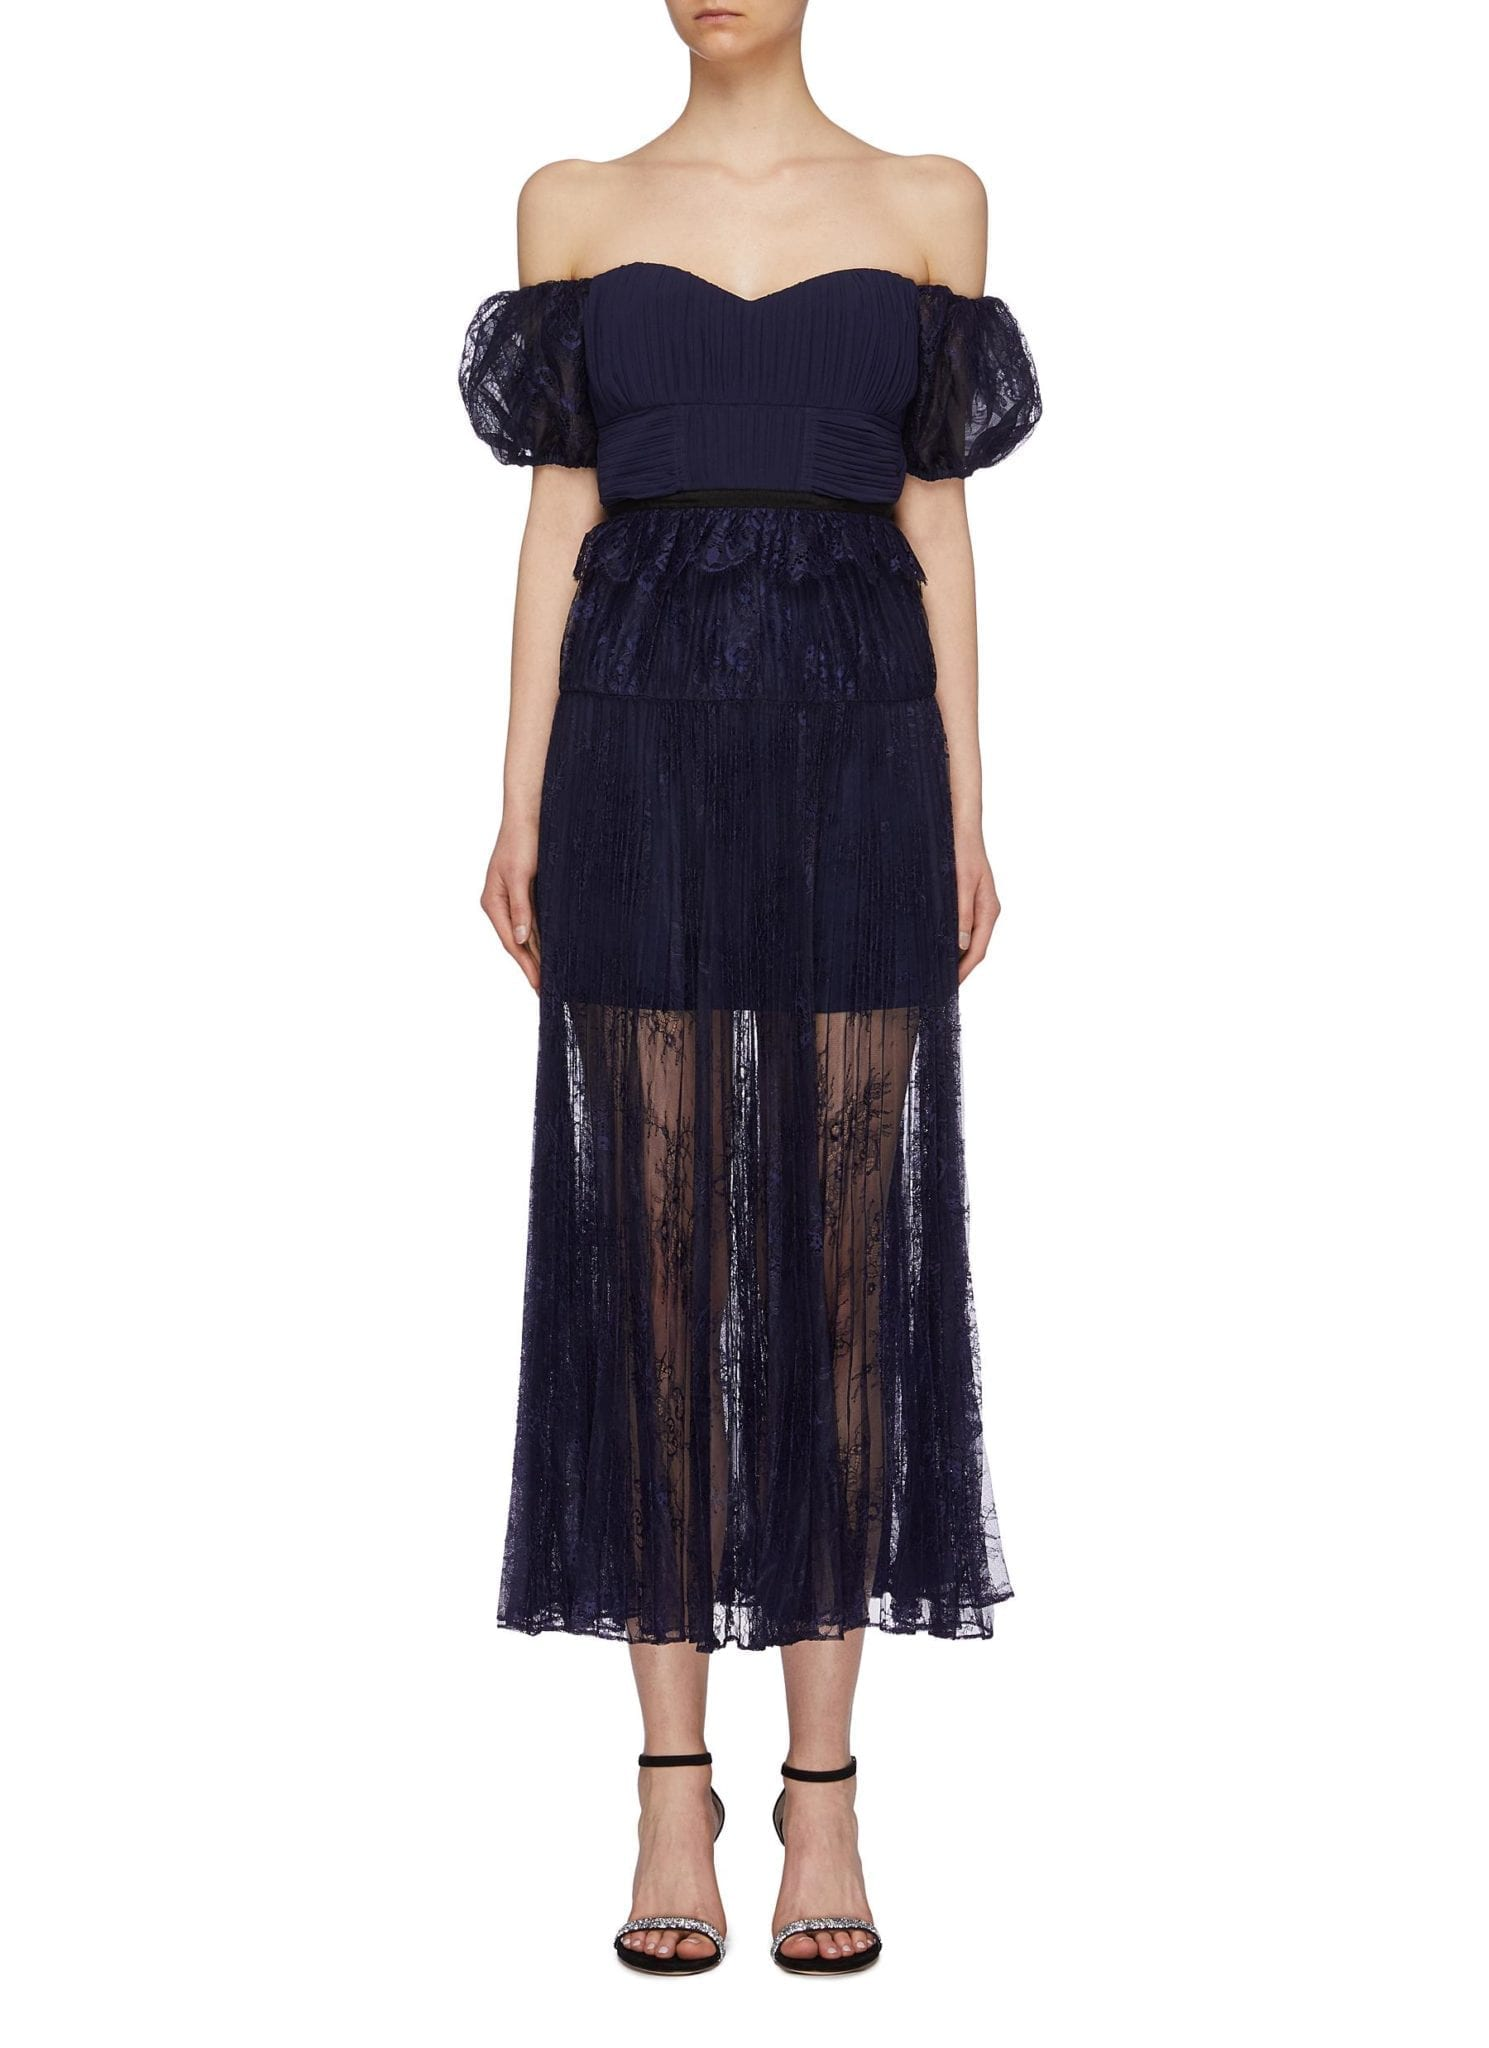 SELF-PORTRAIT Pleated Chantilly Lace Off-shoulder Dress